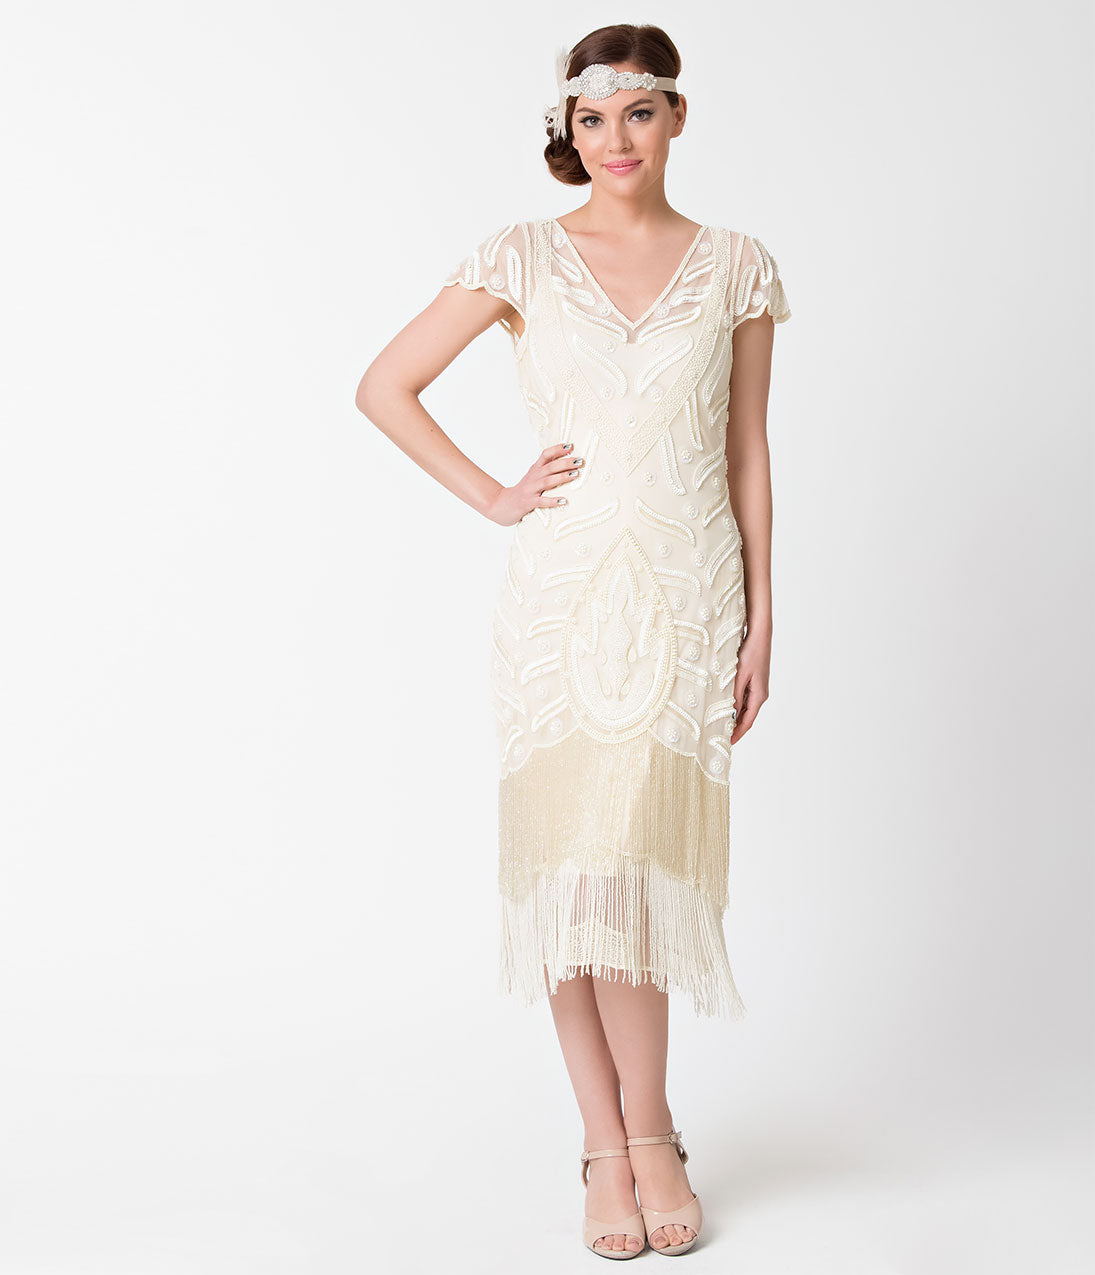 Vintage Inspired Wedding Dress | Vintage Style Wedding Dresses 1920s Style Cream Ivory Beaded Vegas Fringe Flapper Dress $166.00 AT vintagedancer.com